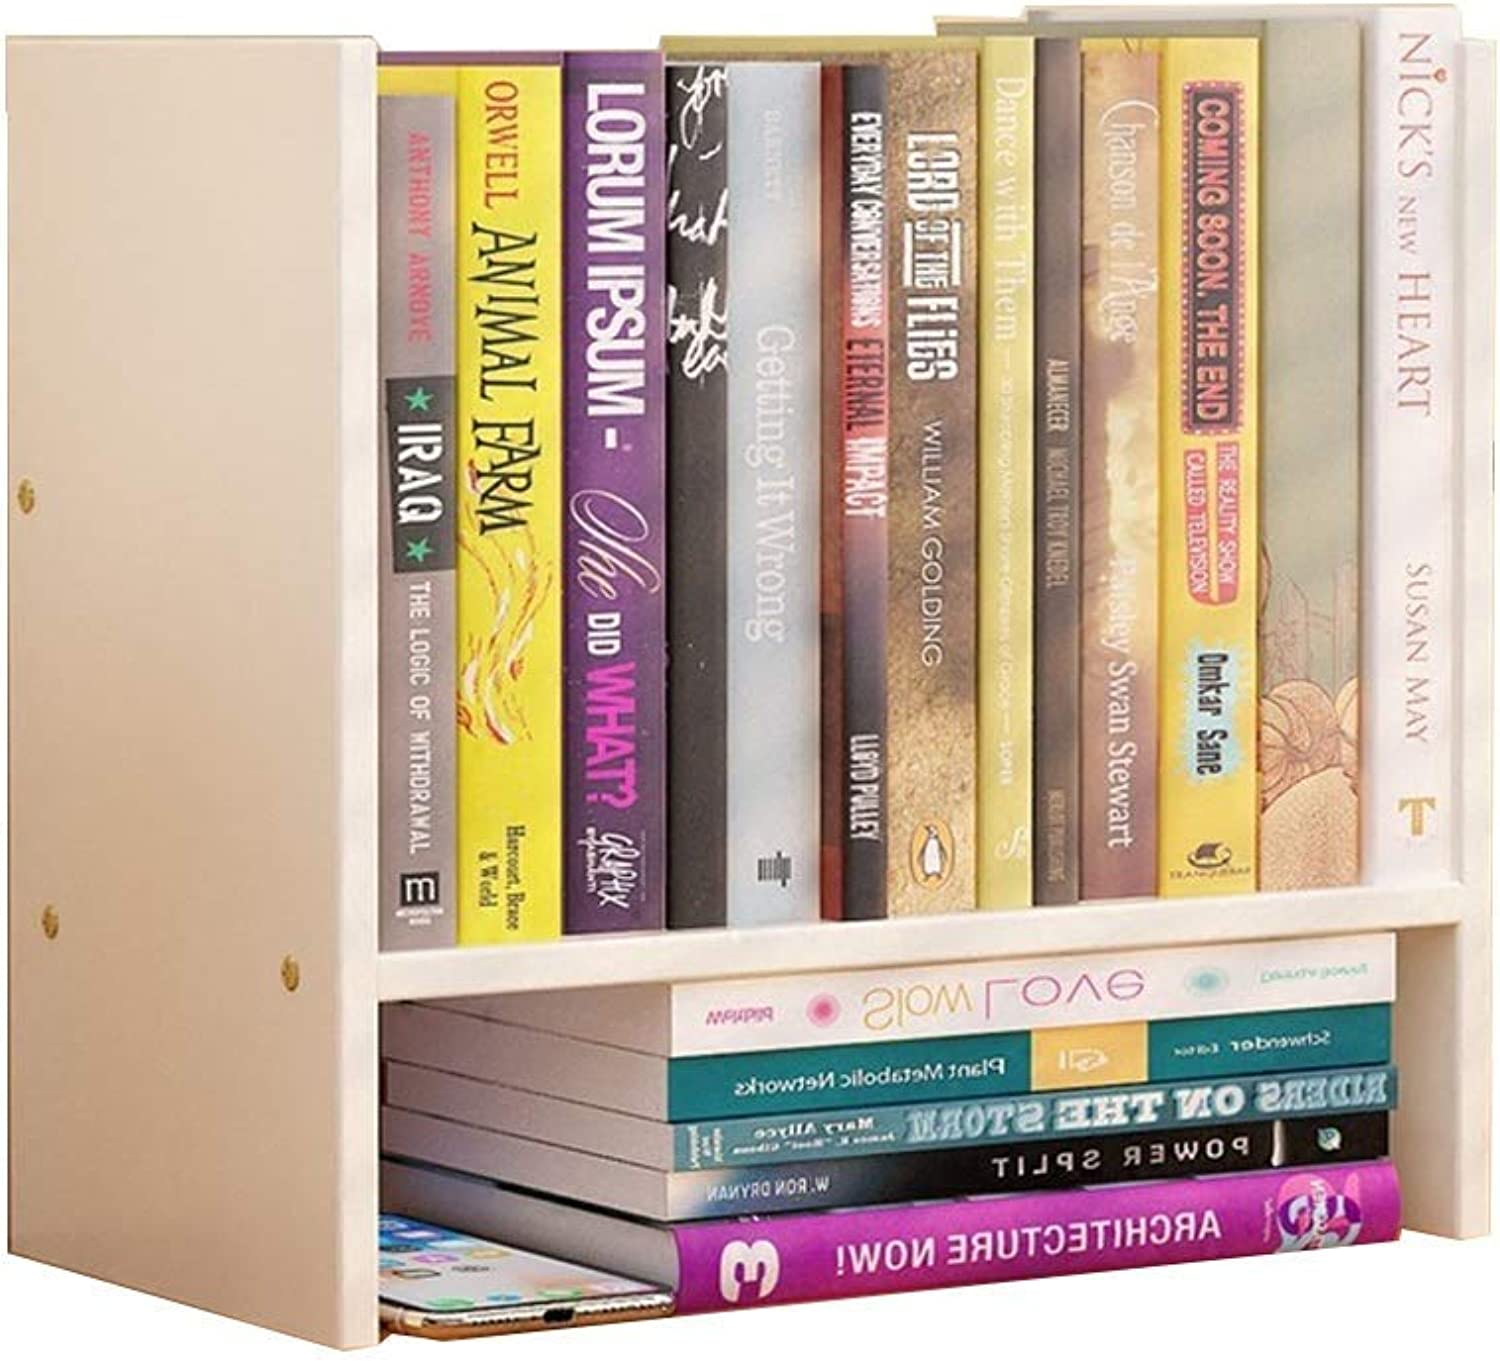 Bookcase - Ledge Wooden Wall Bookshelf Bookcase Wardrobe Bookcase Bedroom Wall Hanging Decoration Creative Pulley Bookcase Simple Bookshelf,A